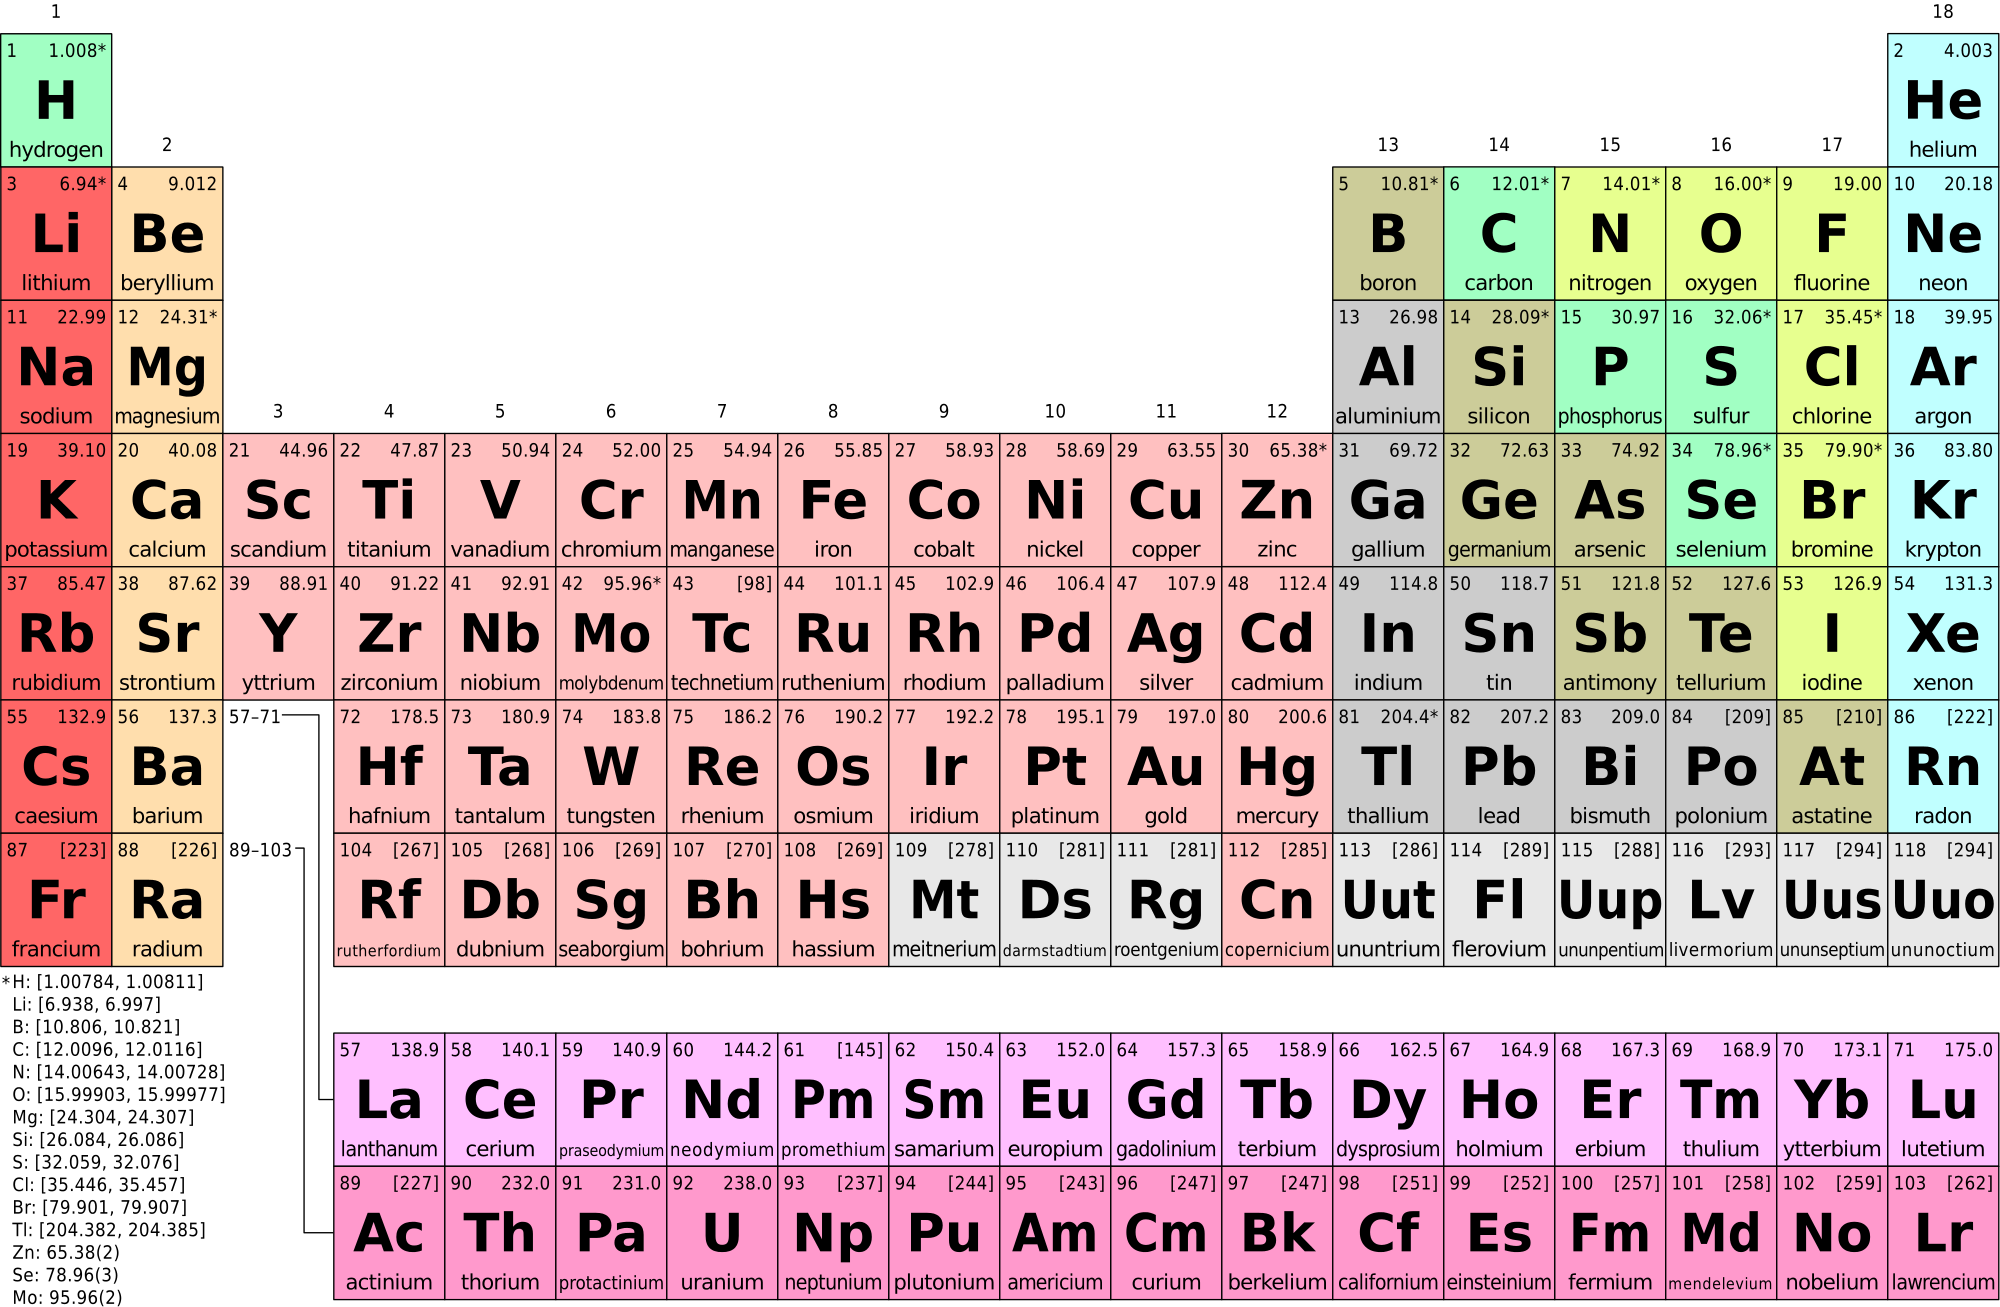 Fig. 3.   The Periodic Table of Elements.    For this lab, we will only concentrate on the first three rows (or periods). Each period represents the number of electron orbitals an atom of an element has. For example, element 6, carbon (C) is in the second period indicating it has two orbitals. We can also determine how those electrons are arranged based on the element's position on the periodic table. The number of electrons per orbital is equal to the number of elements within a period. The first period has two elements, indicating the first orbital can have up to two electrons. The second orbital can have up to eight. Electrons fill the inner orbitals before adding new orbitals. To determine the number of  valence electrons  (electrons in the outer orbital), you can simple count from left to right on the period the element is in. For example, carbon (C) has 6 electrons. It is in the second row, and therefore has two orbitals. Carbon's first two electrons are in the inner orbital and the last four are in the valence electron shell. If you count from left to right in period 2, carbon is the fourth element. This corresponds to the number of valence electrons that carbon has, four. Valence electrons are primarily responsible for an element's chemical reactivity.